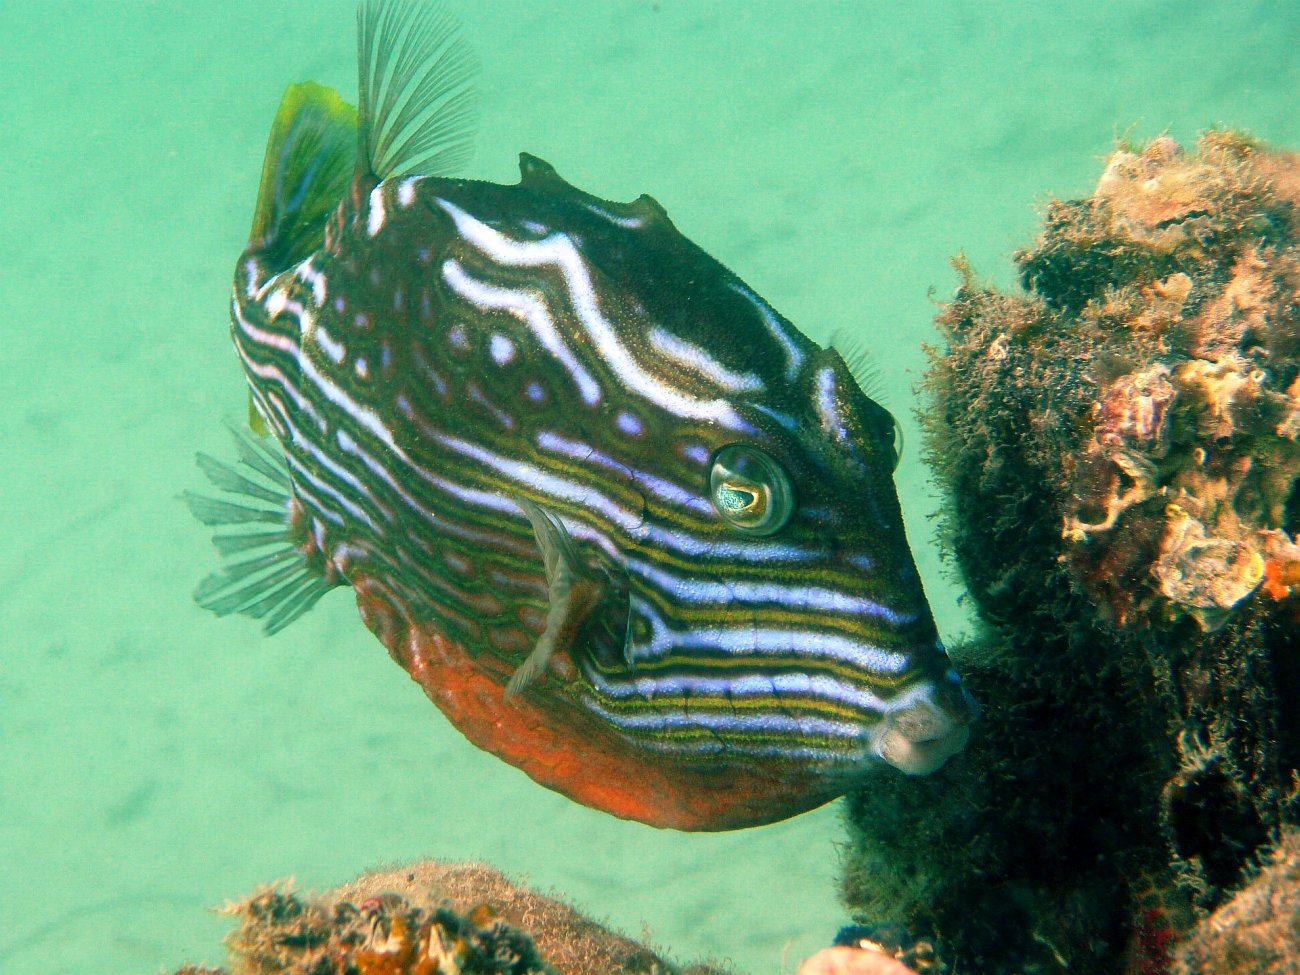 Some dive pics from a site at day and then night - Seiko SBDX001 Robb%27s%20Jetty%2001-06-2013%20cow%20fish%201